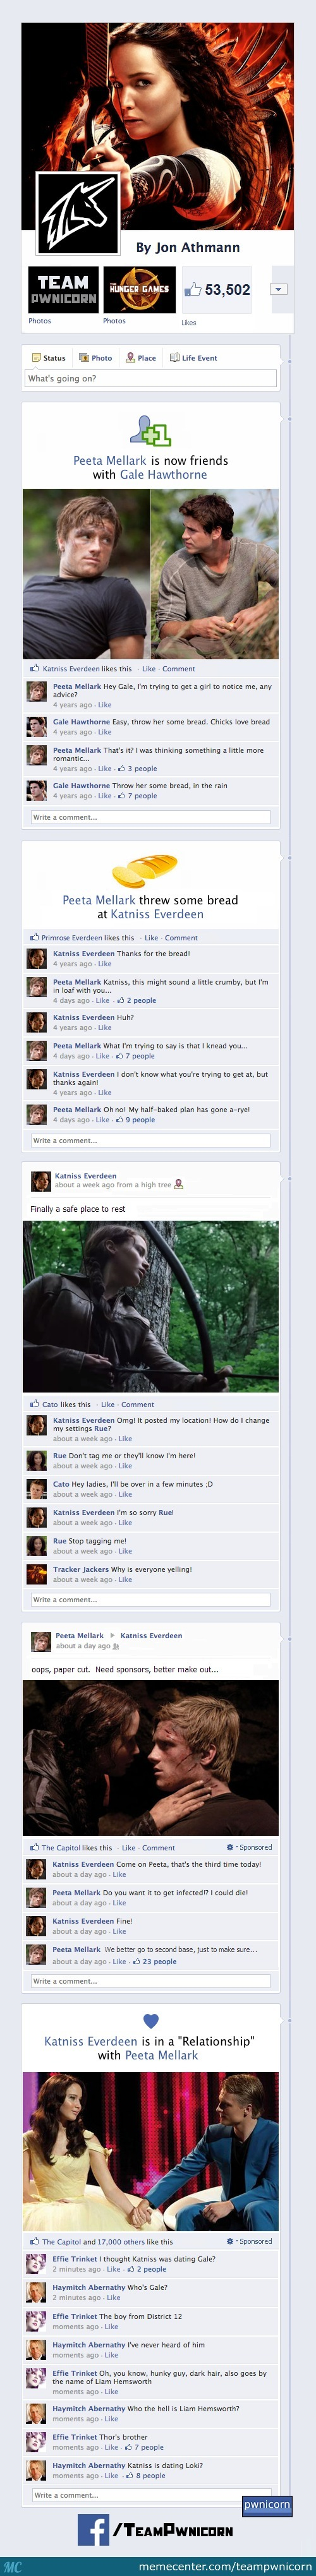 The Hunger Games On Facebook